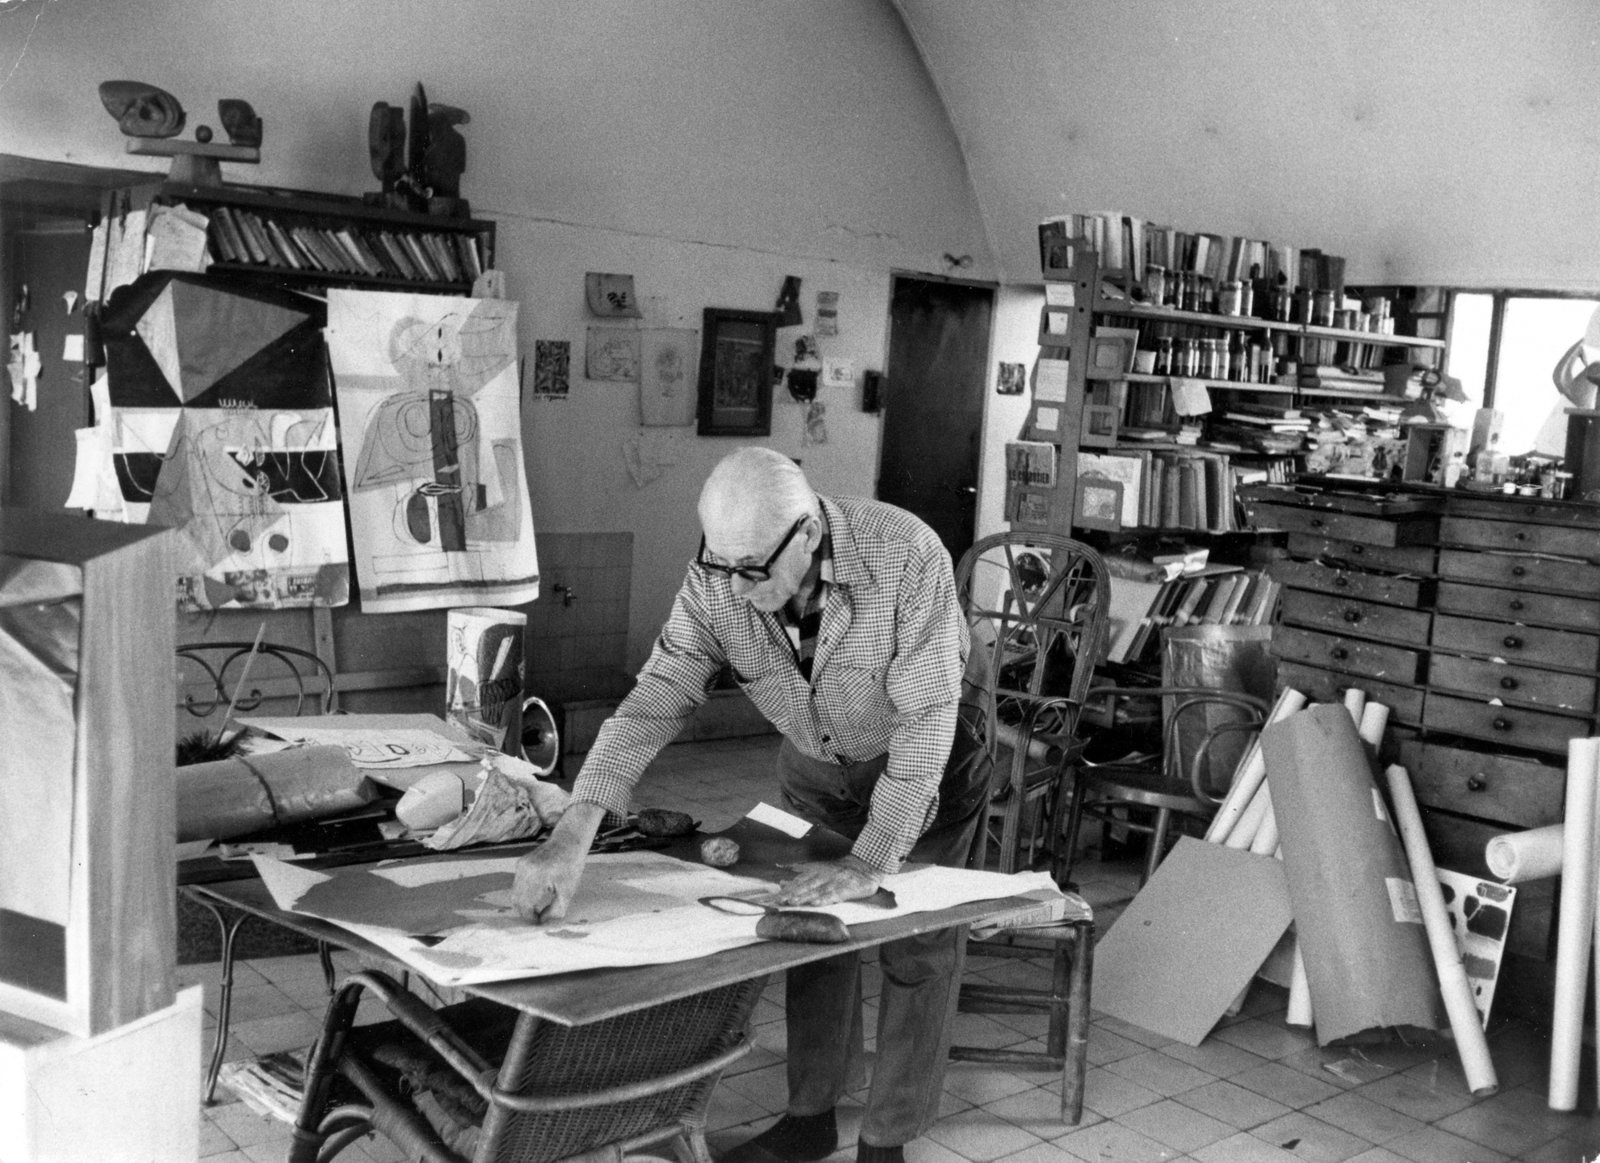 Le Corbusier in his apartment and studio in Paris, France.  Photo 8 of 28 in Here's How to Pronounce the Names of 28 Famous Designers and Architects from The Getty Foundation's Modern Architecture Conservation Initiative